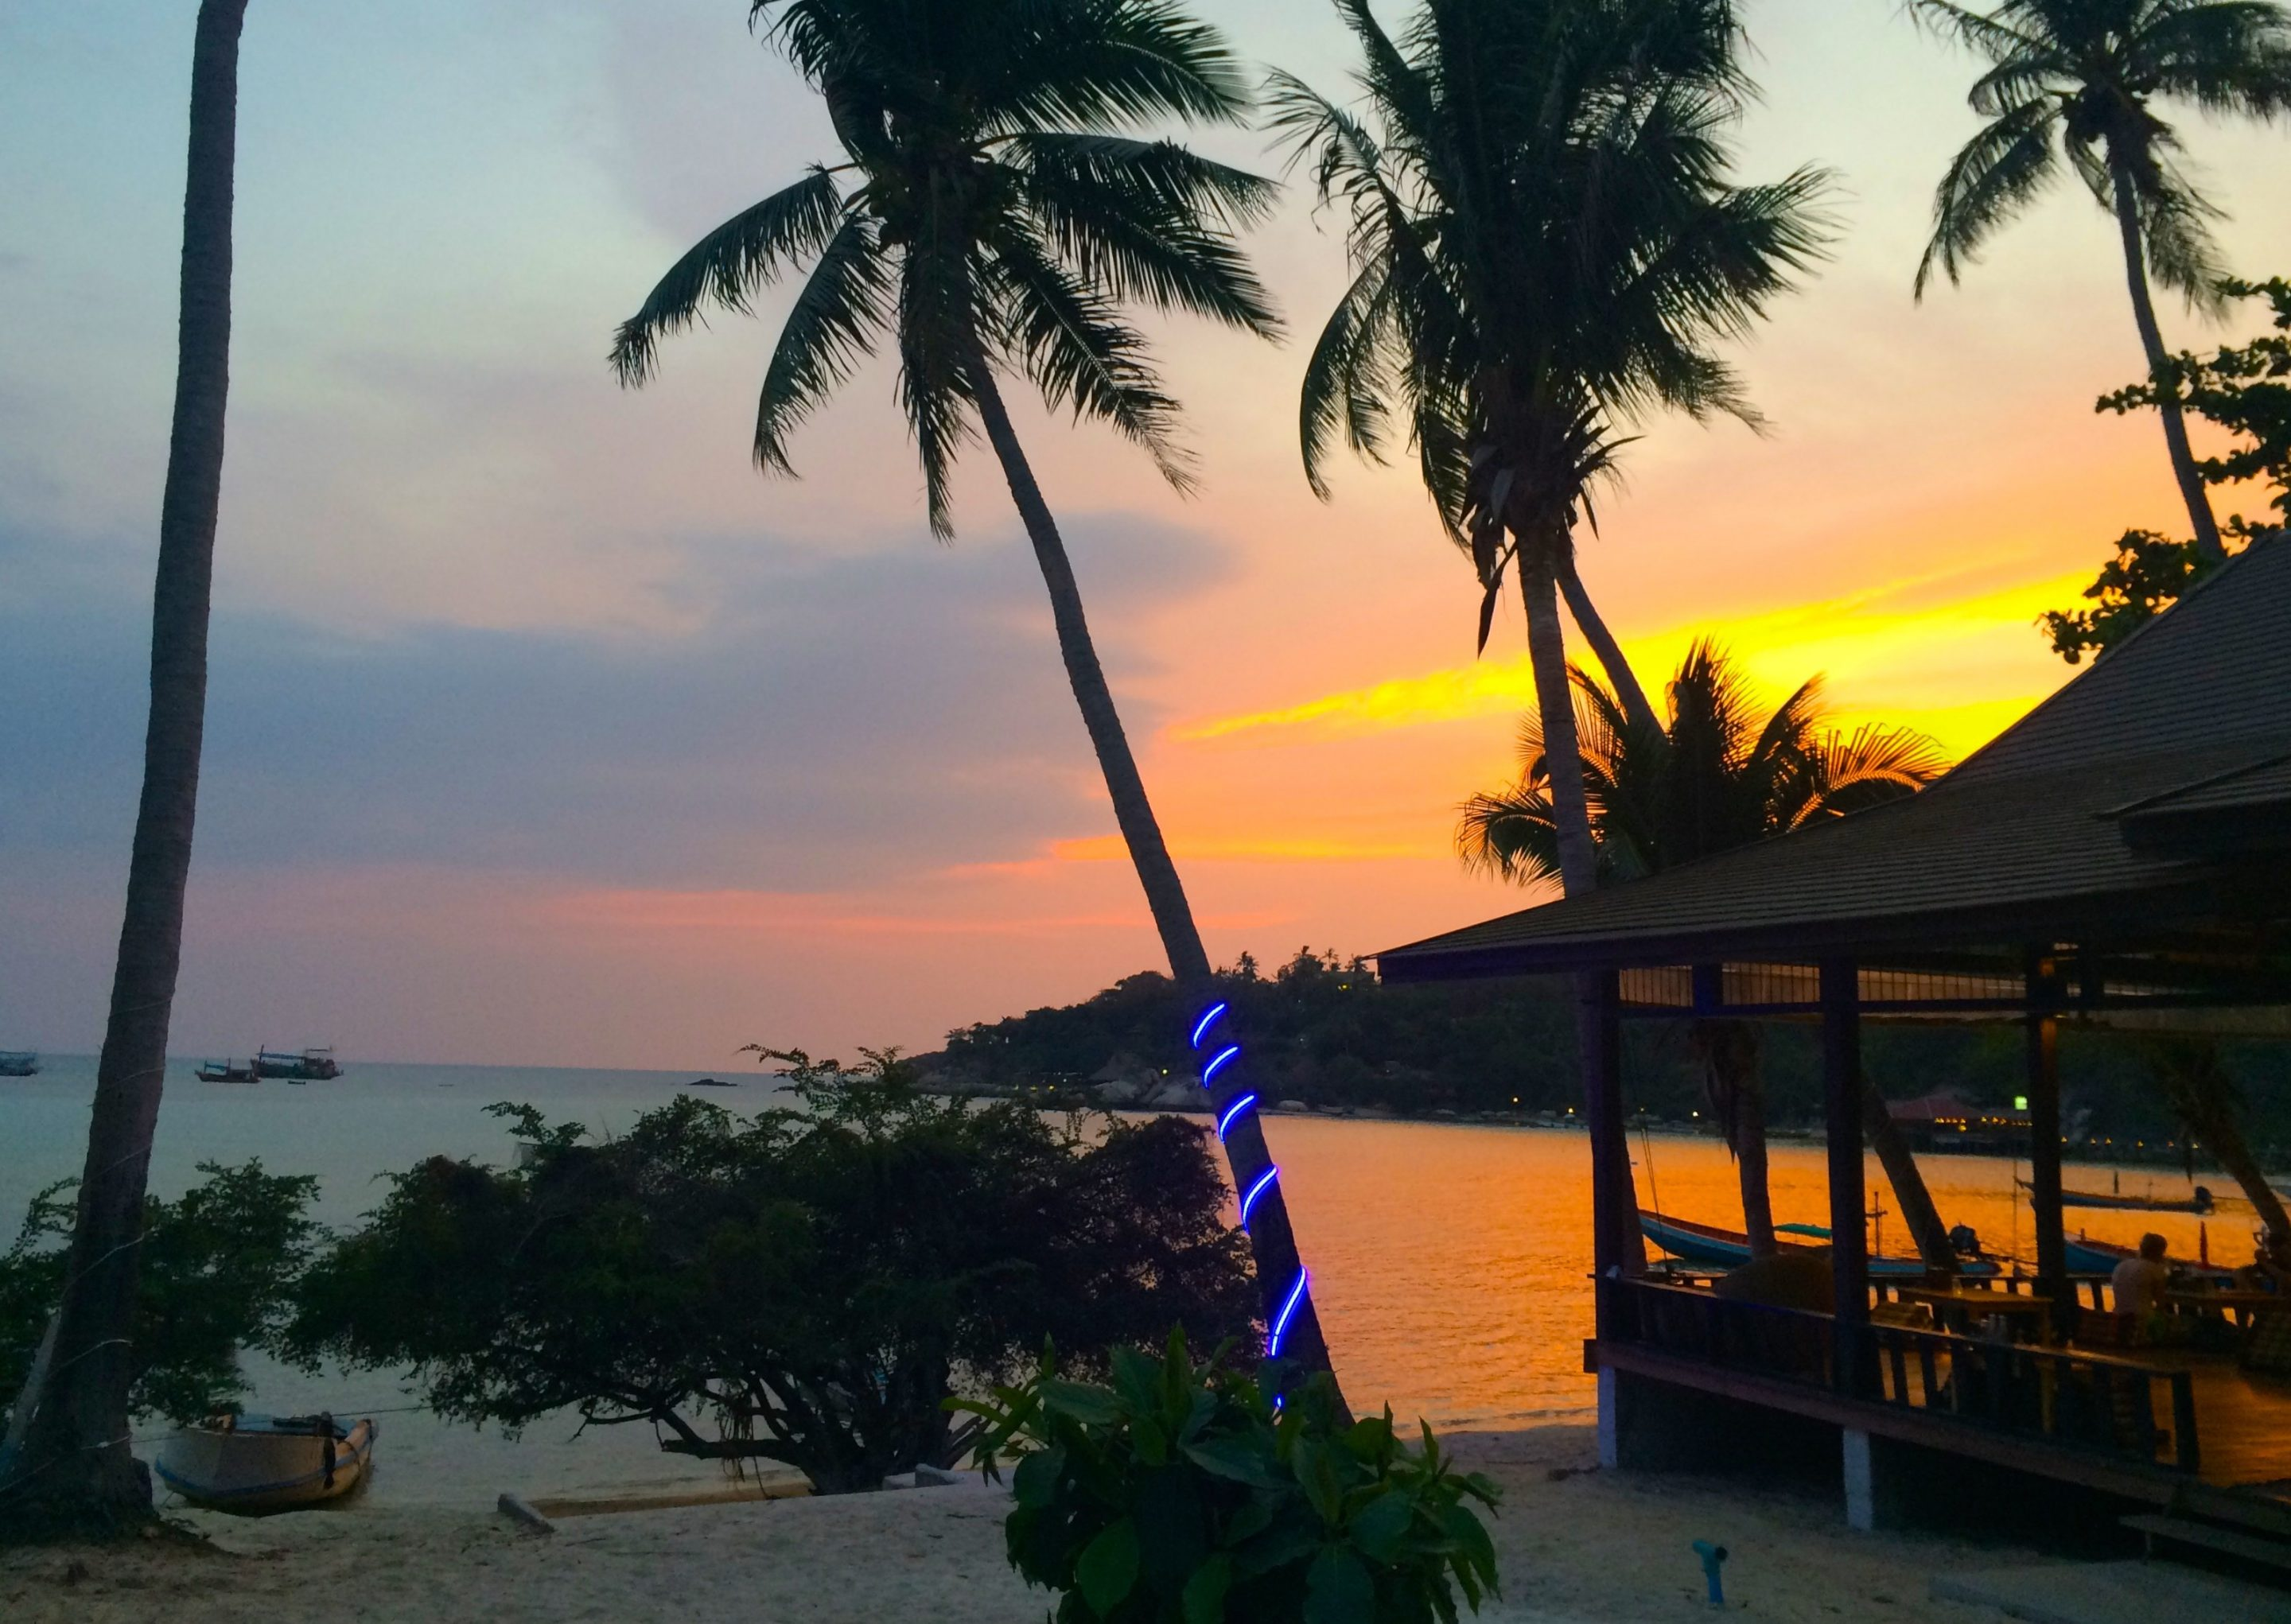 The Elephant's travel guide Koh Tao. Completely biased and very awesome, explore the best places to eat, sleep and relax on Turtle Island.